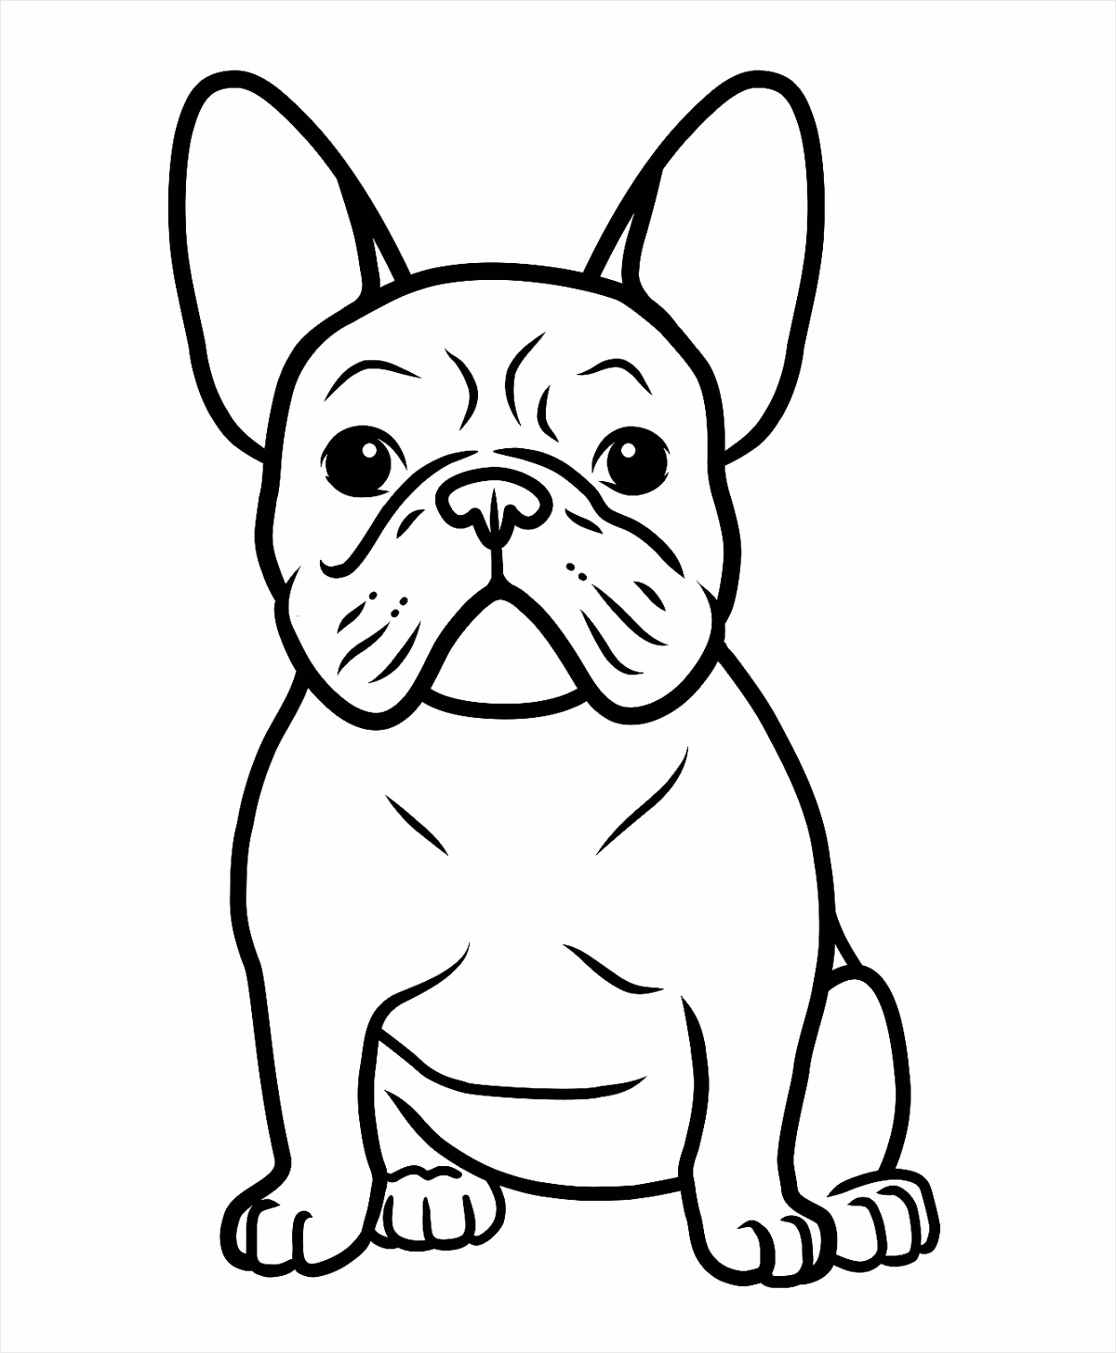 dog coloring pages printable of dogs for pictures picture ideas eoeyr